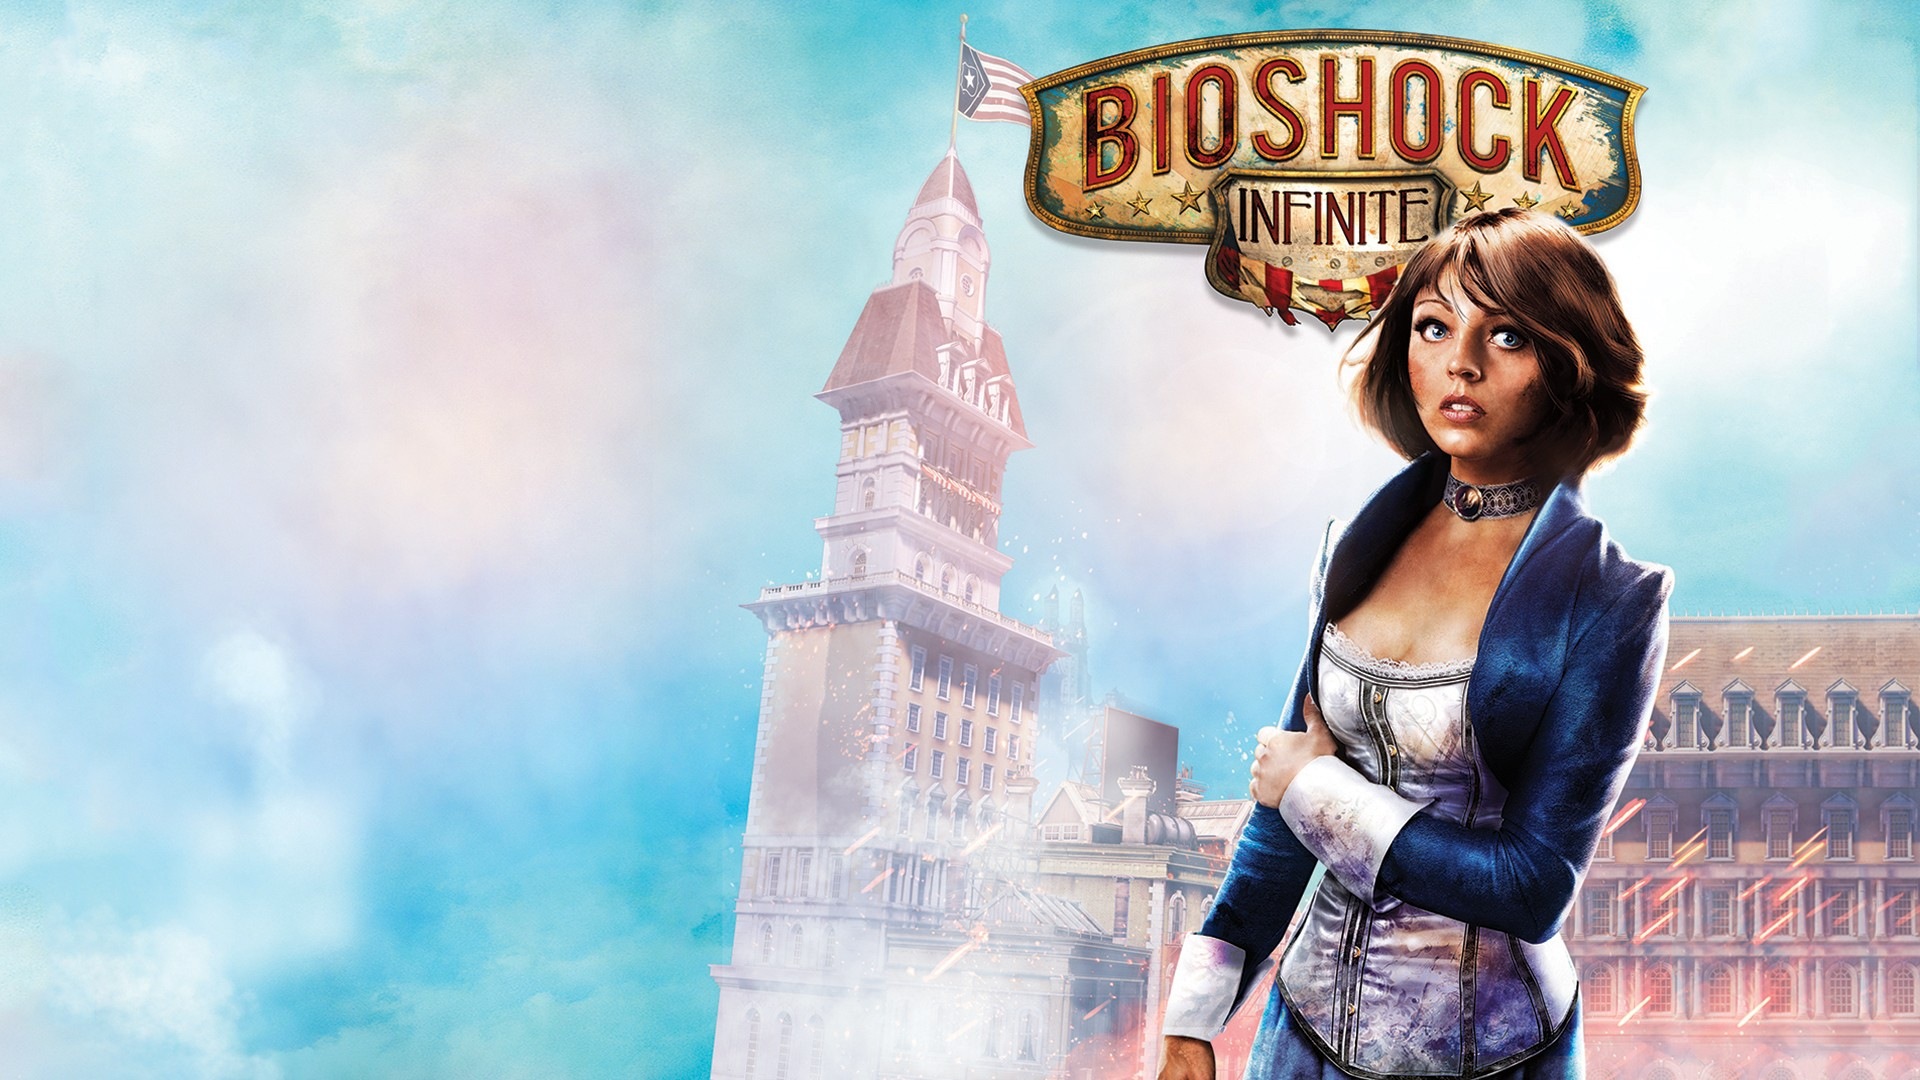 BioShock Infinite HD Wallpaper 1920x1080 ID41210 1920x1080